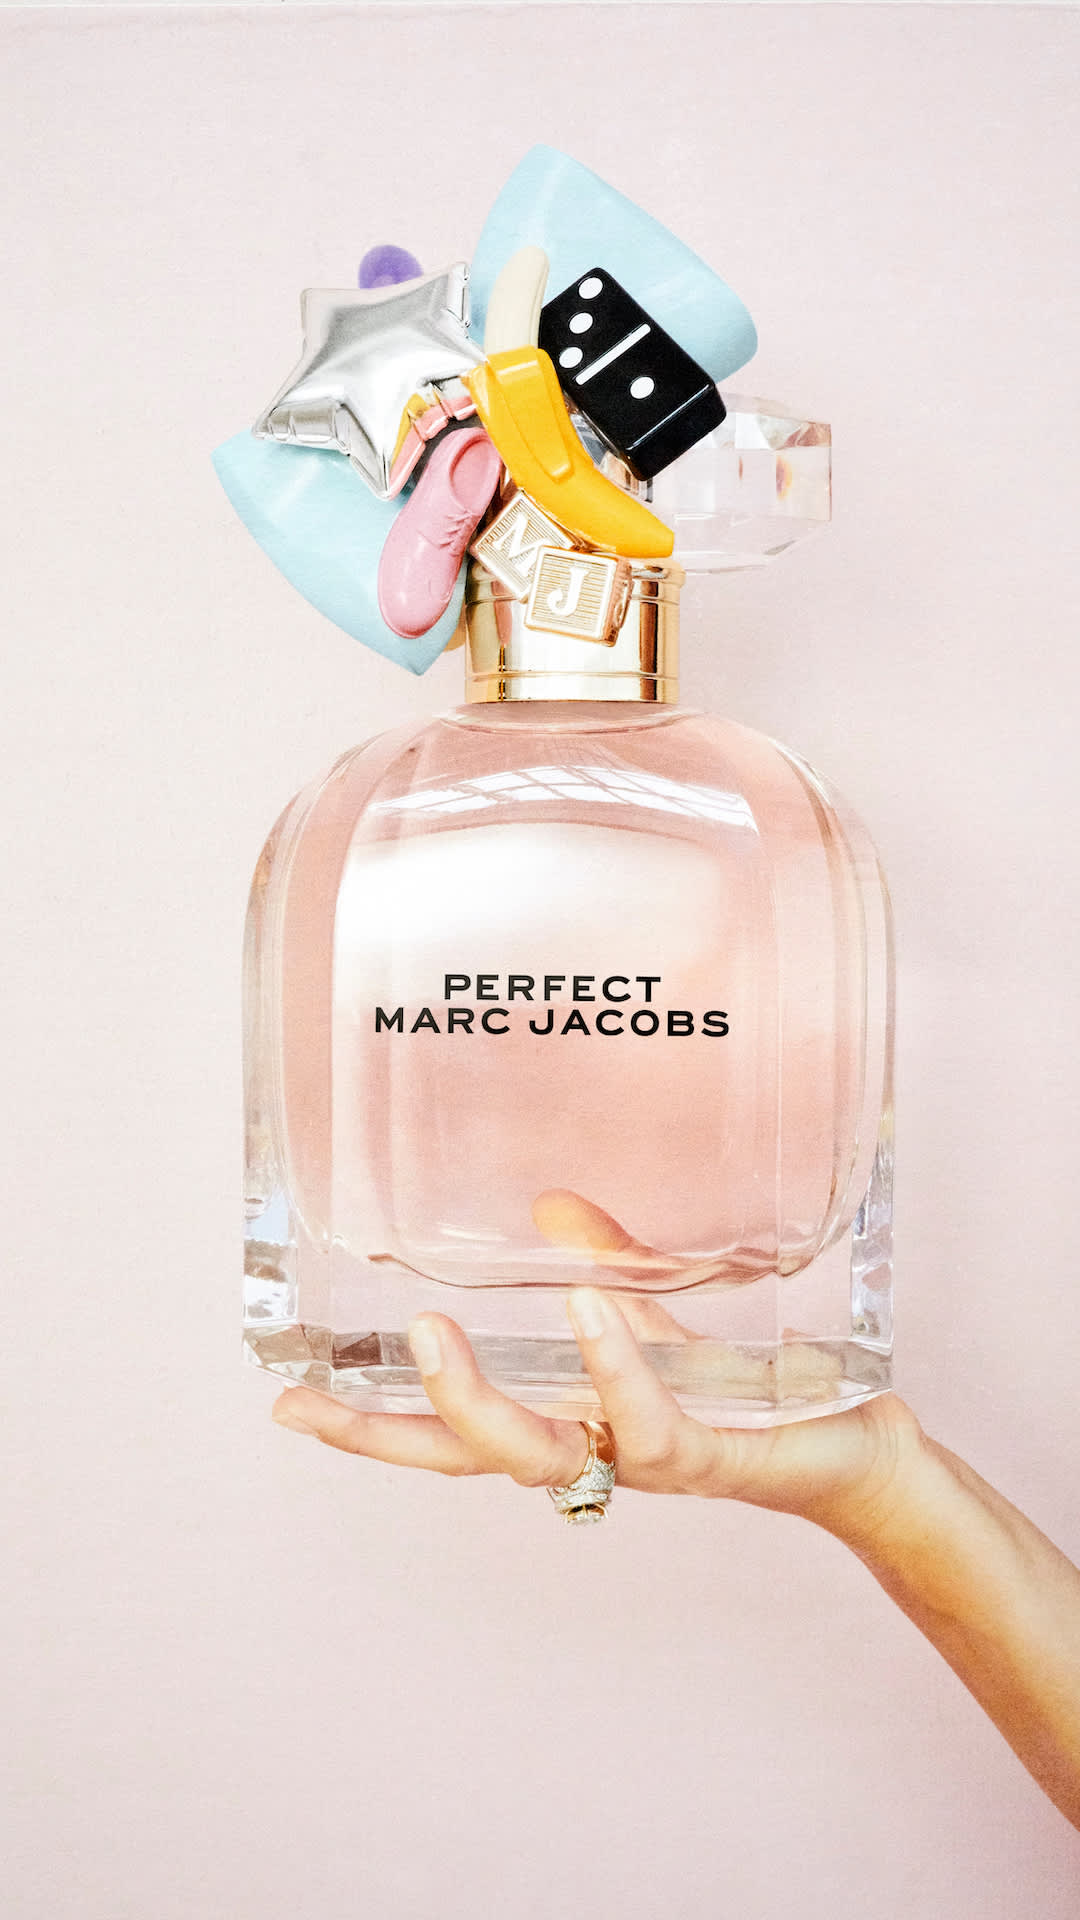 Perfect by Marc Jacobs